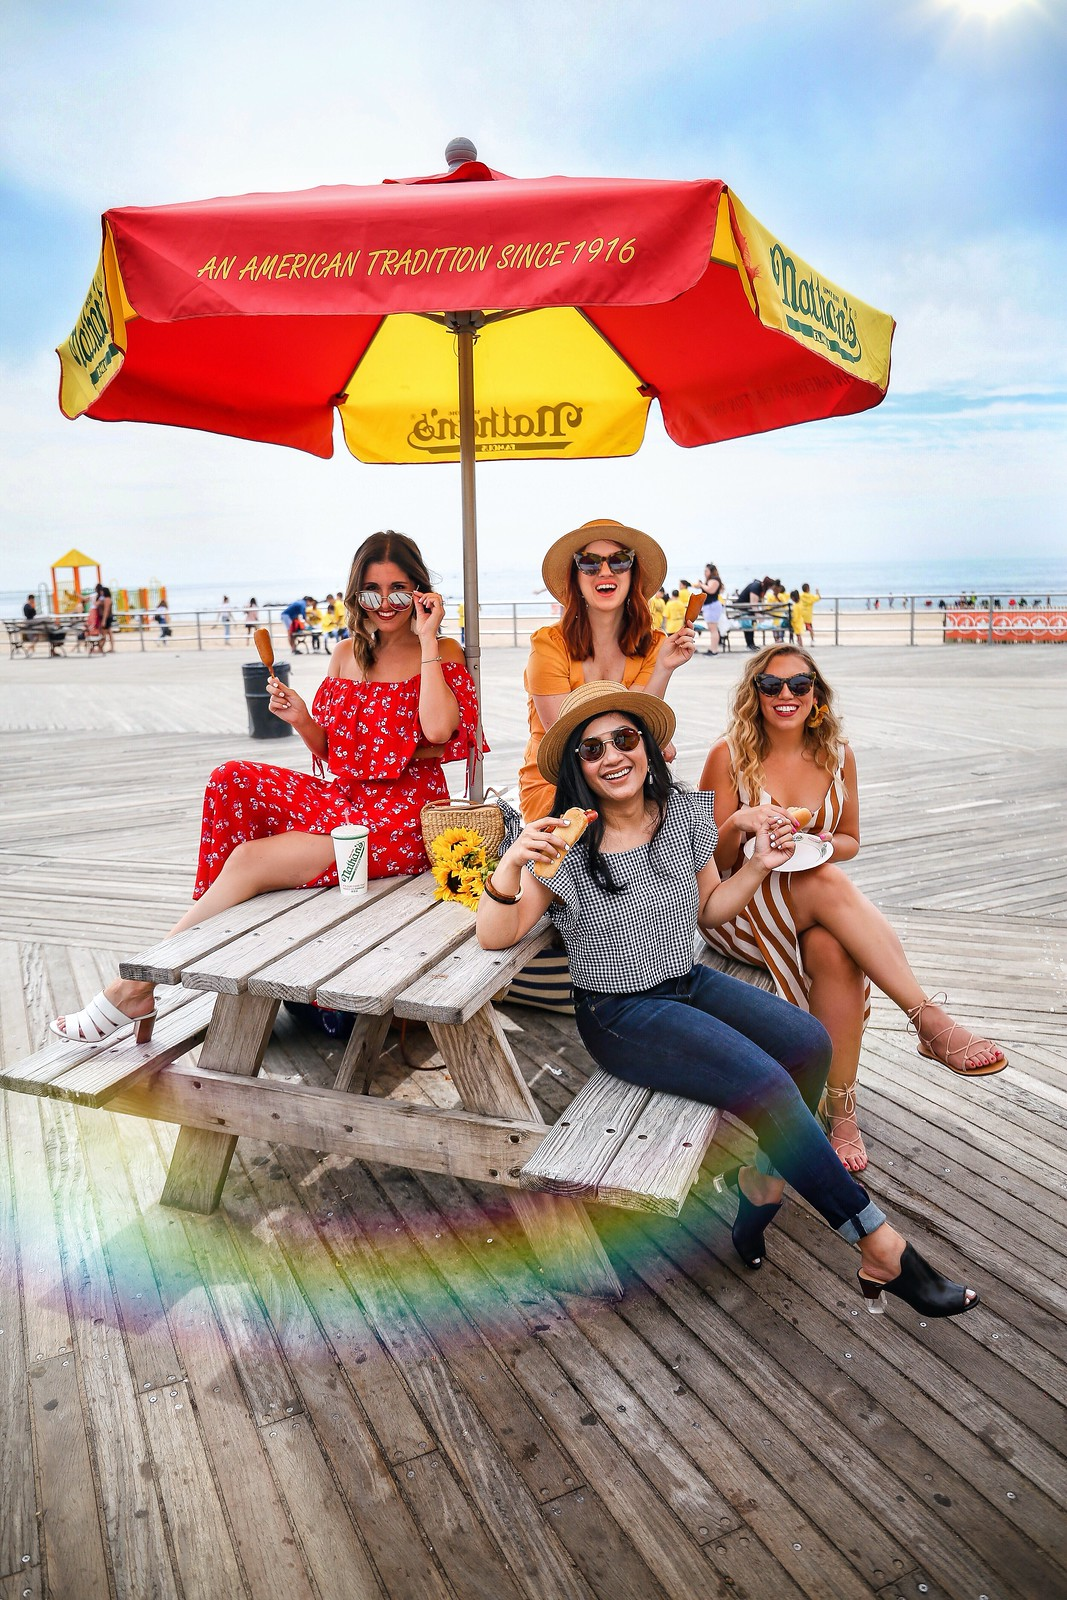 The Most Instagrammable Spots at Coney Island | The Most Instagrammable Places in Coney Island | Best Instagram Photos at Coney Island USA | Wonder Wheel Instagram Photos | Most Instagrammable Places in New York City NYC | Luna Park Pics | Amusement Park Photo Inspiration | Nathans Hot Dogs Coney Island